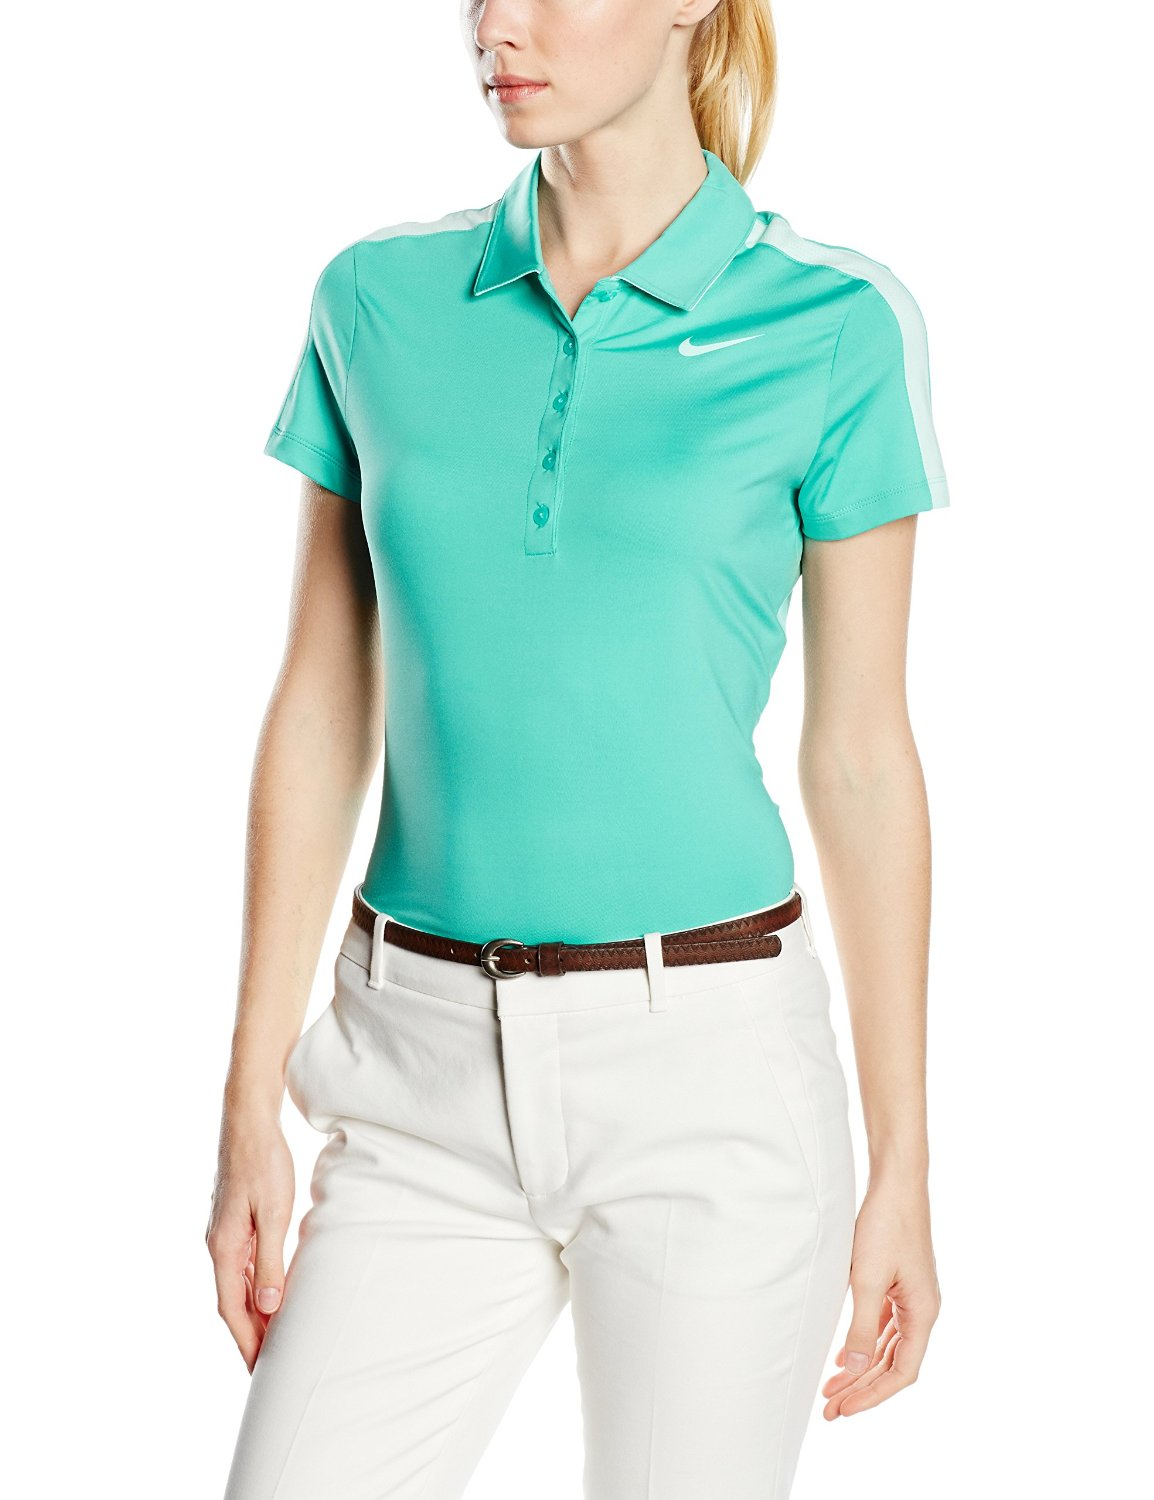 25a42e29 Get Quotations · Nike Womens Dri-Fit Swoosh Mesh Golf Polo Teal 640344-405  SIZE SMALL